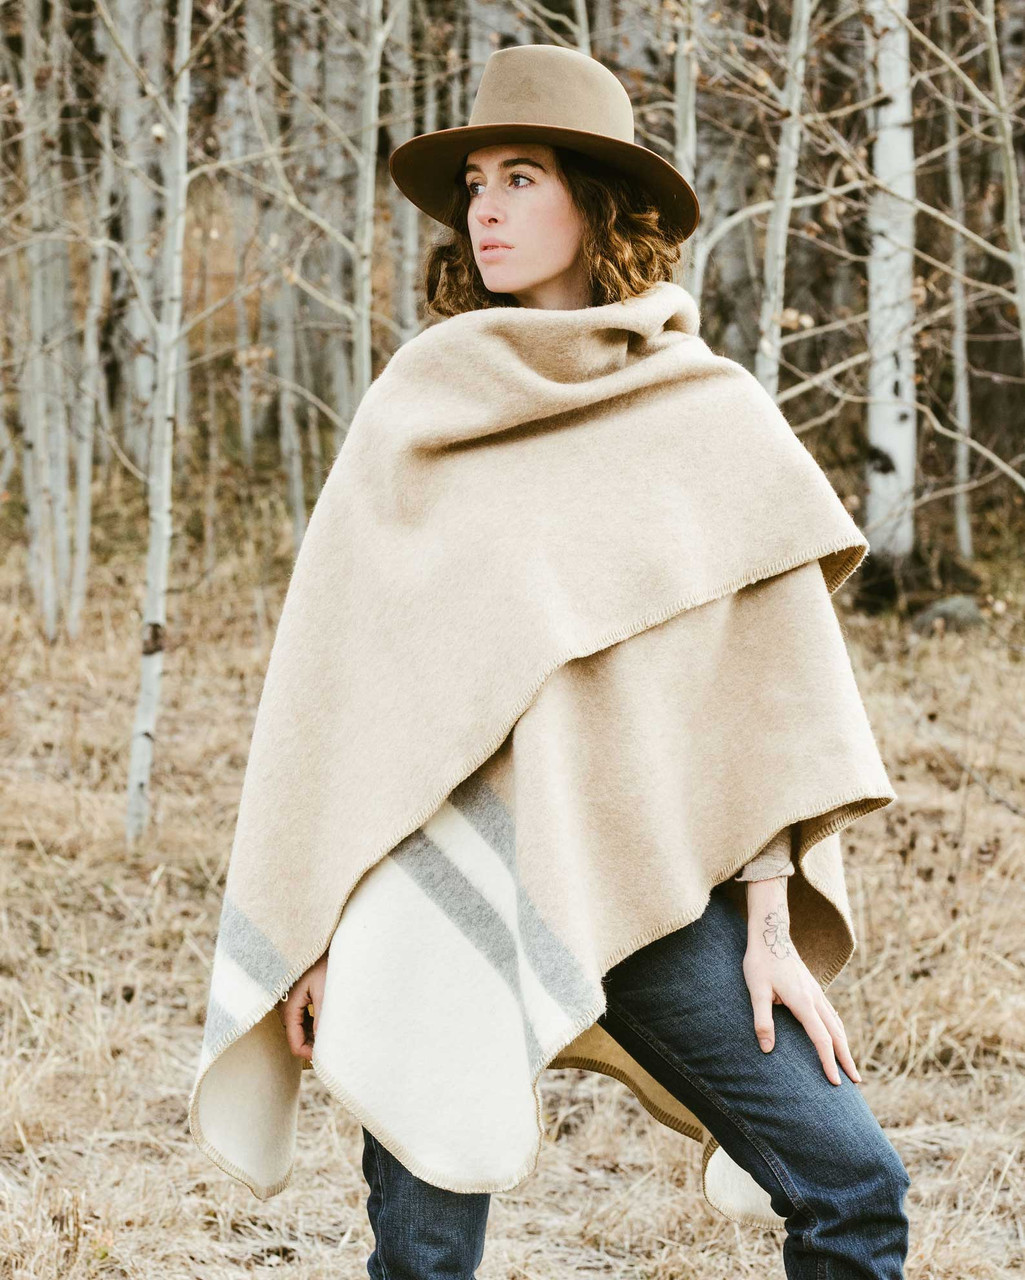 Alicia Adams Alpaca Aspen Cape, alpaca poncho cape for women, alpaca poncho womens, alpaca wrap, ivory, light grey and beige alpaca cape